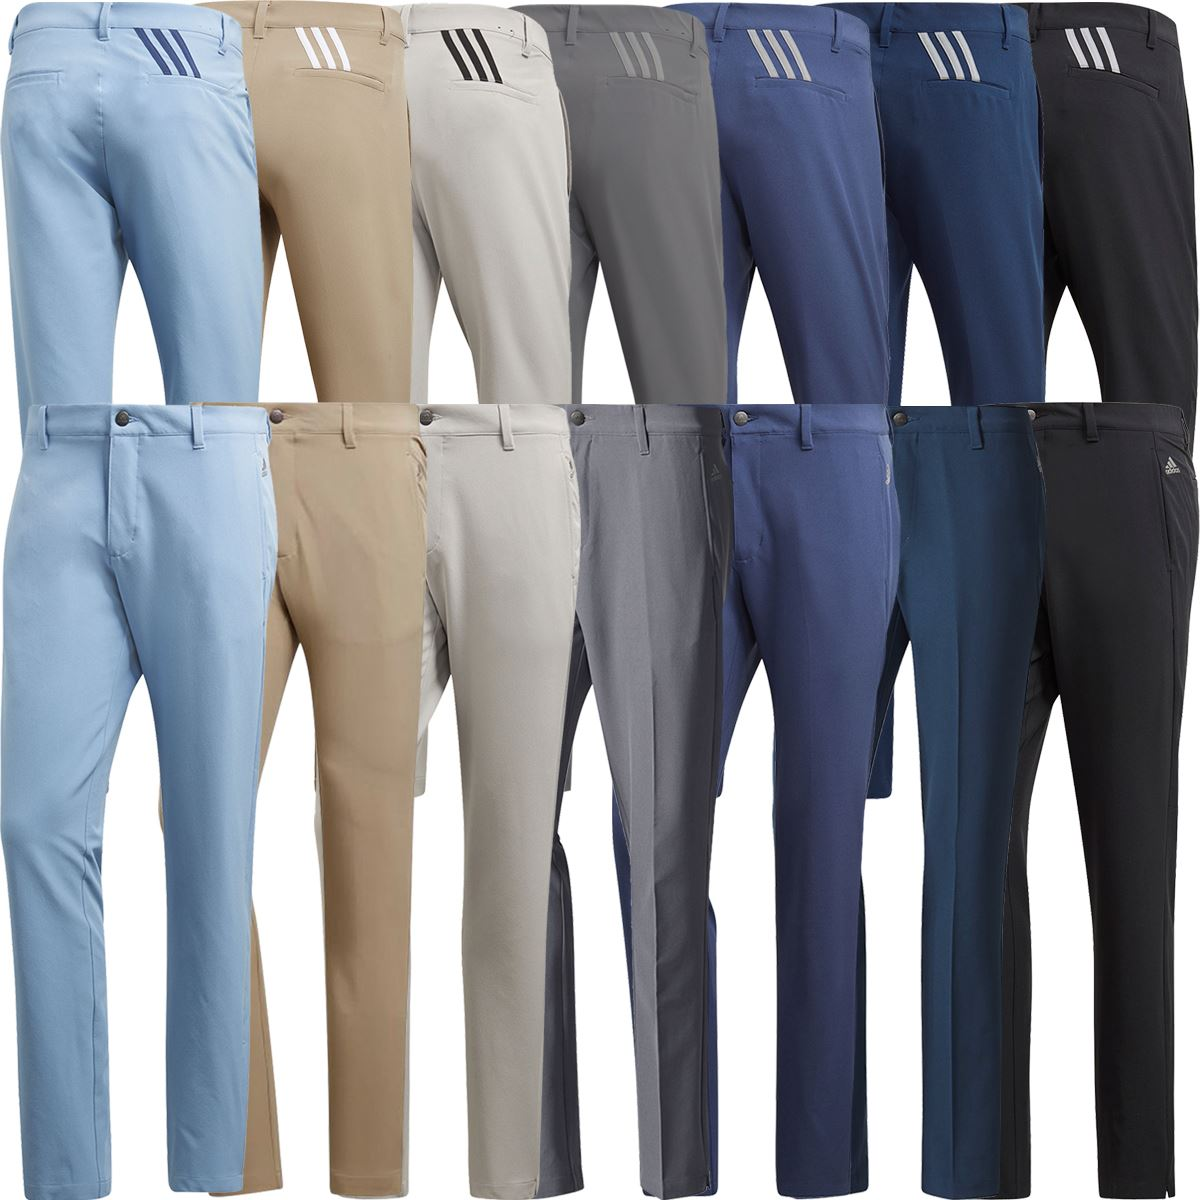 Details about adidas Golf 2019 Ultimate 365 3-Stripe Mens Trousers Stretch  Pant Tapered Leg